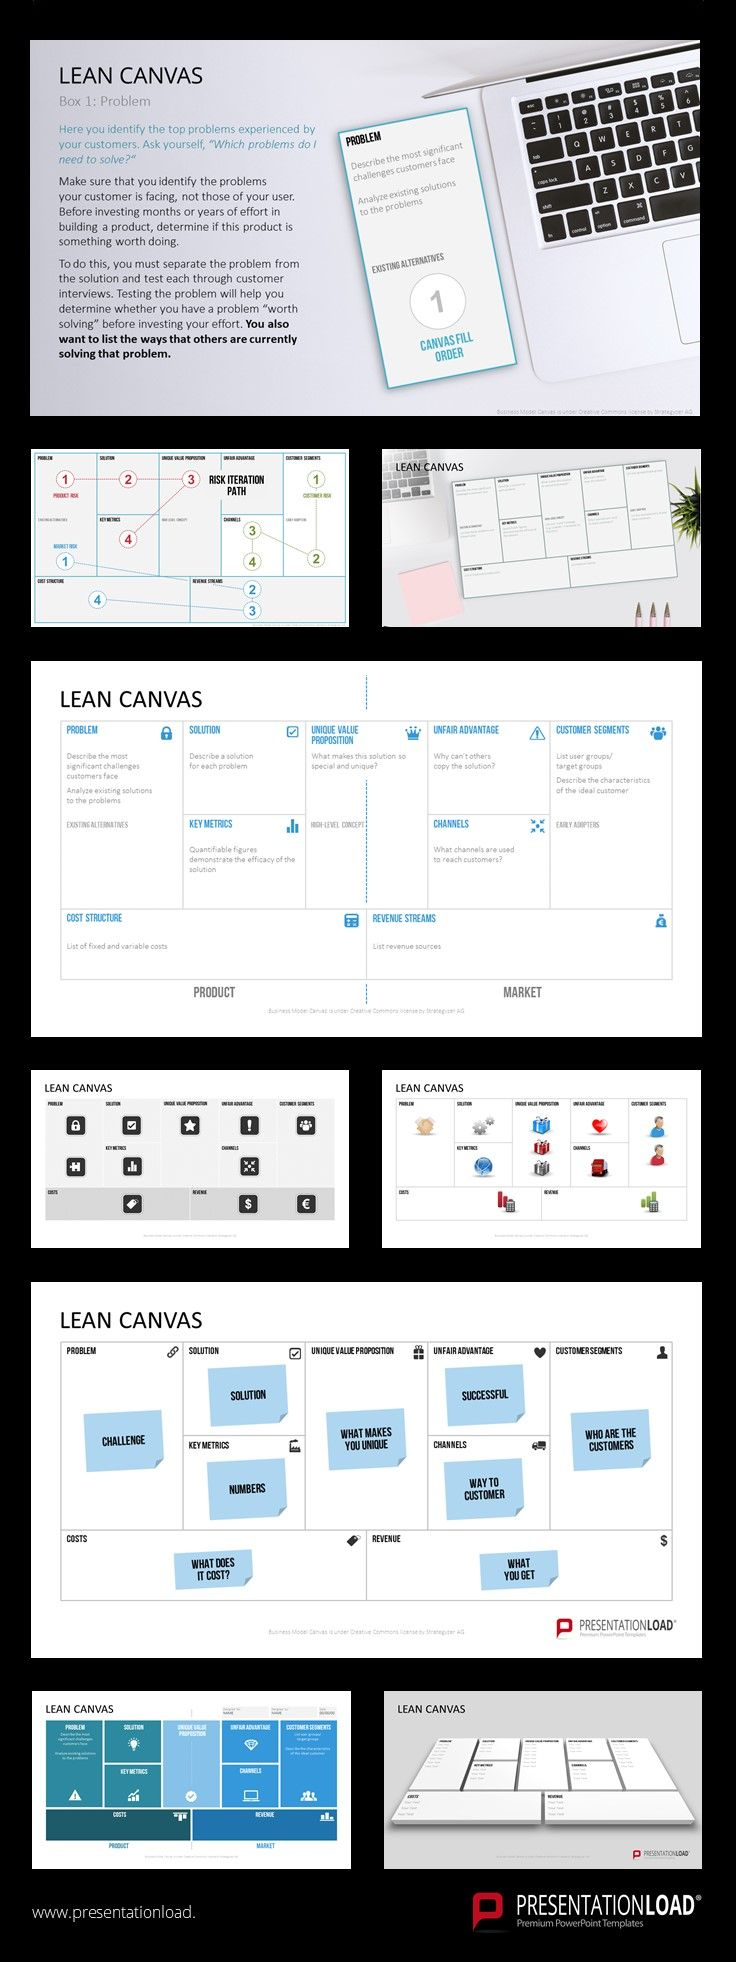 A canvas is a popular management tool for presenting